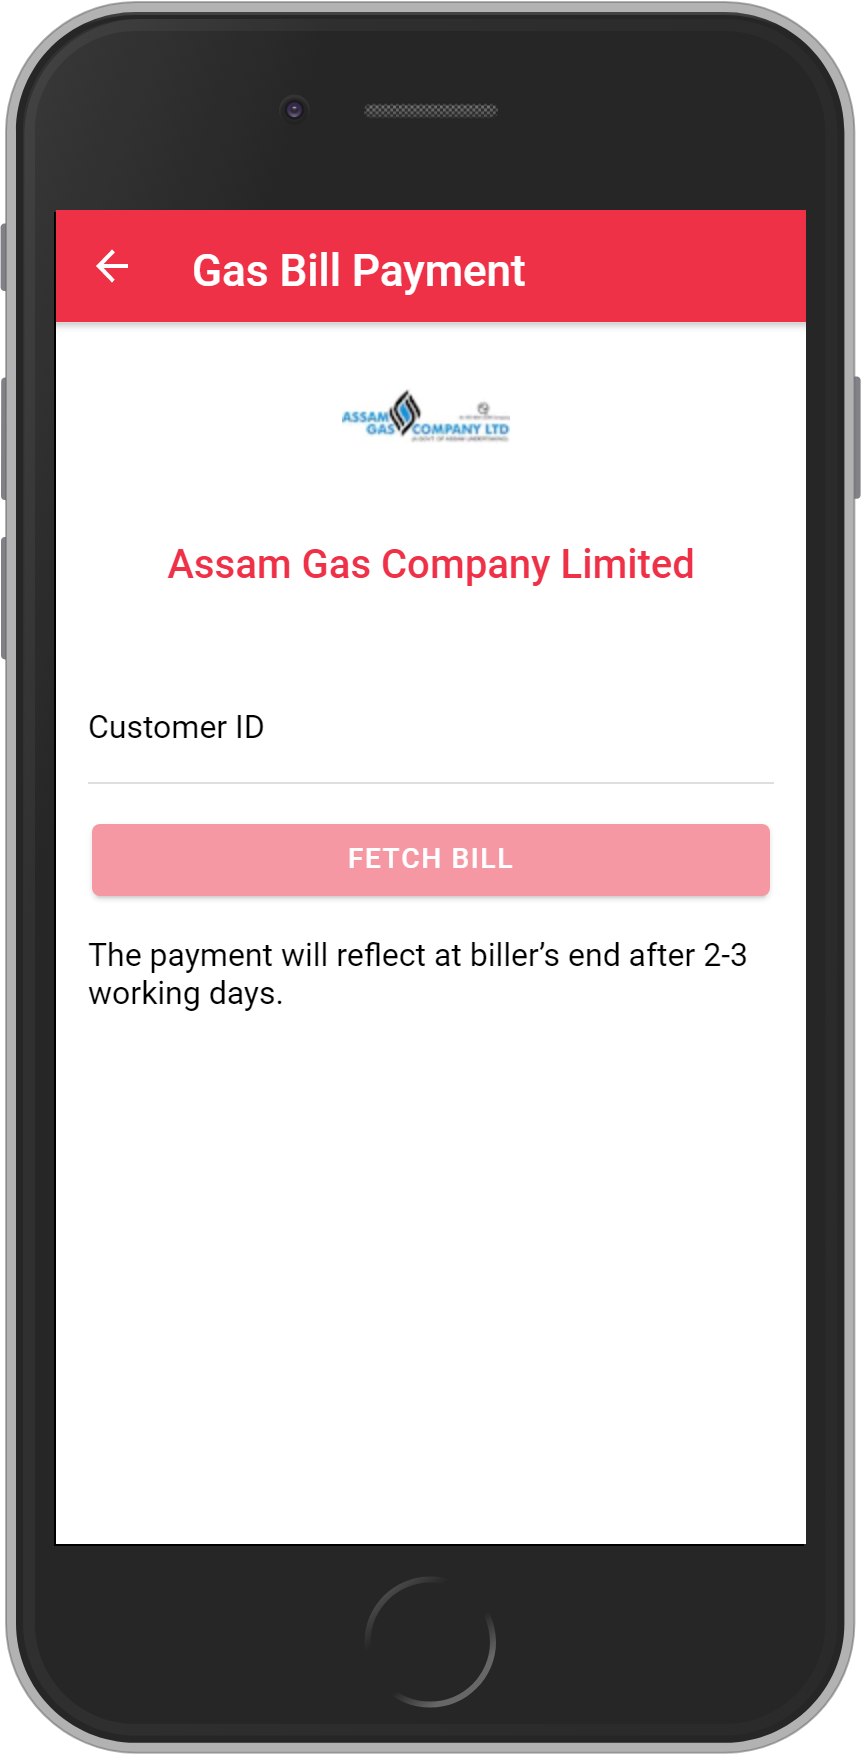 Get UNLIMITED <b>0.1%</b> CASHBACK on Assam Gas Company Limited Bill Payment.